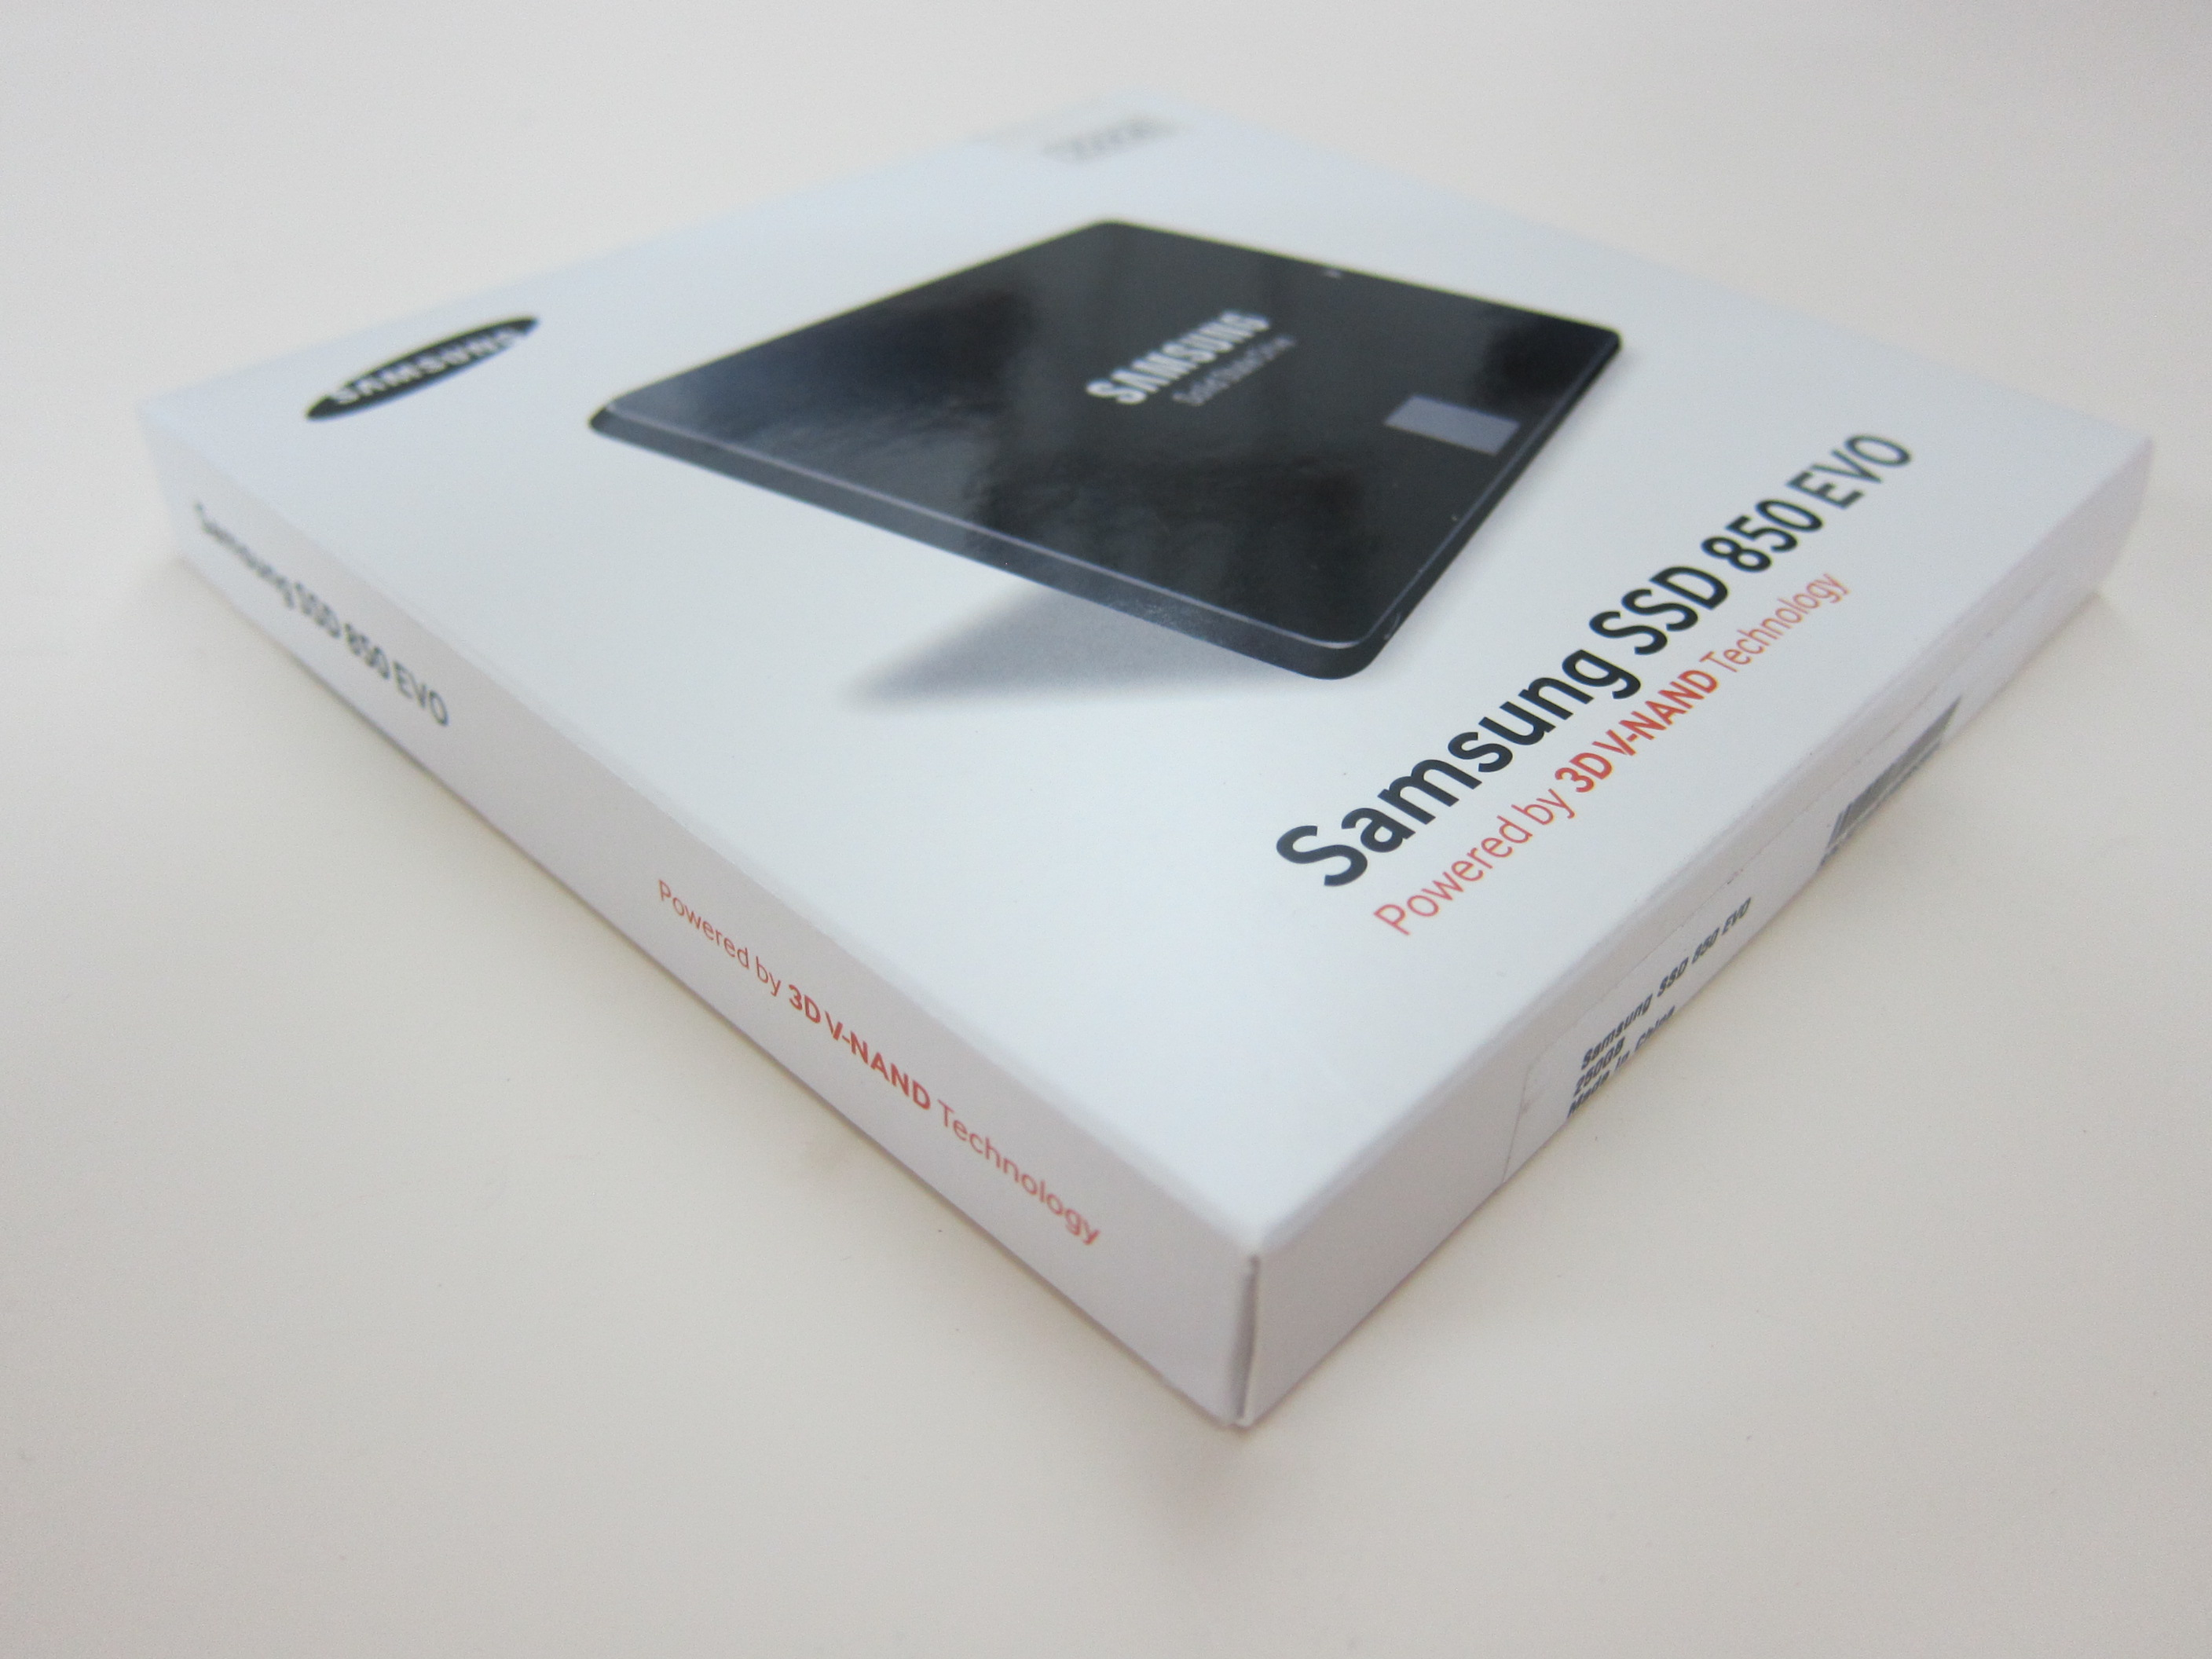 Samsung 850 Evo 250gb 25 Inch Sata Iii Internal Ssd Blog 860 Box